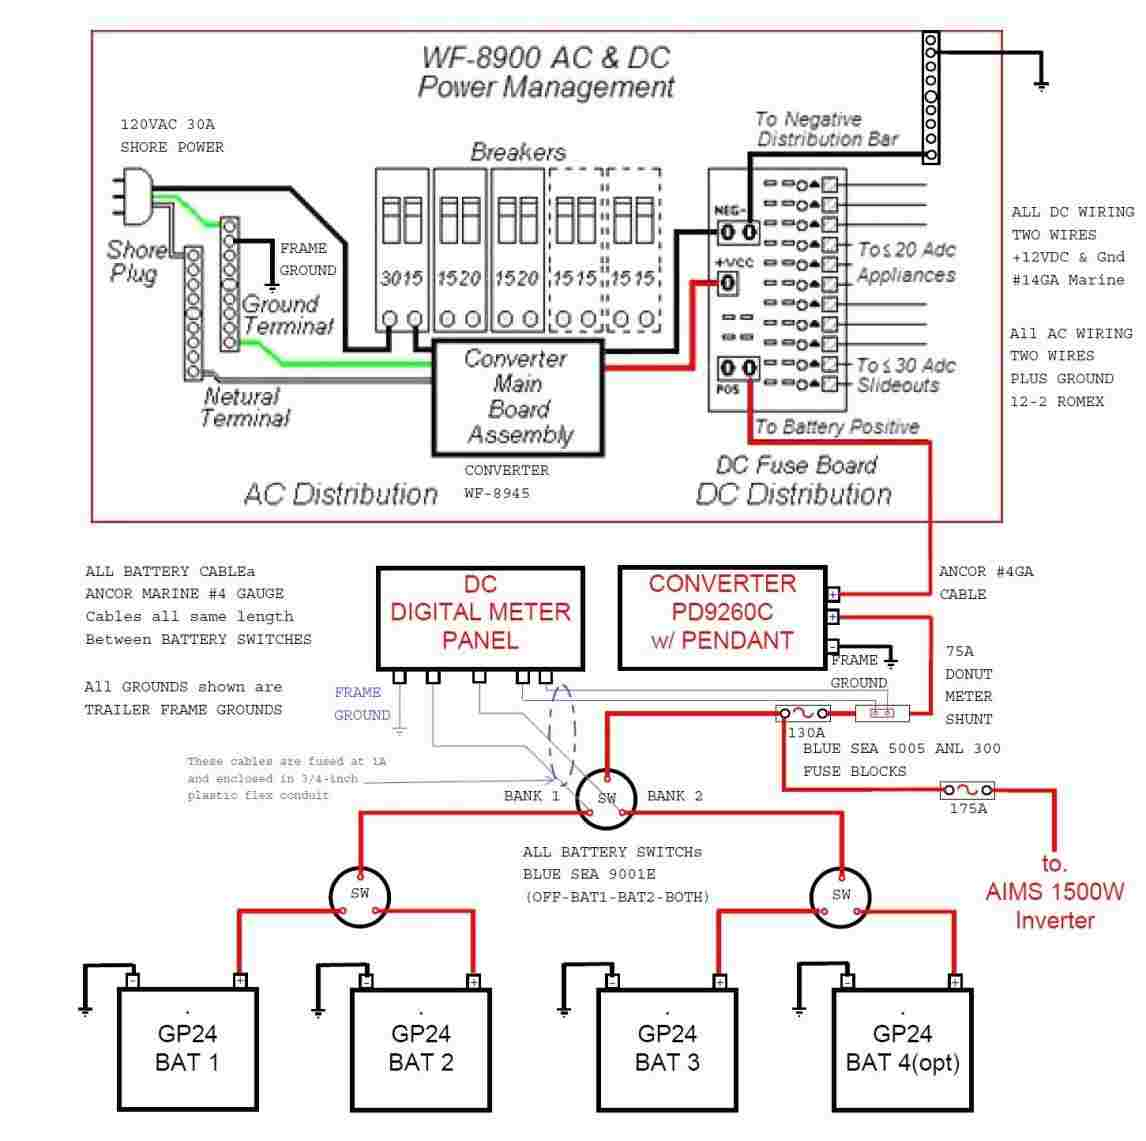 Travel Trailer Ac Wiring - Wiring Schematics Diagram - Travel Trailer Wiring Diagram